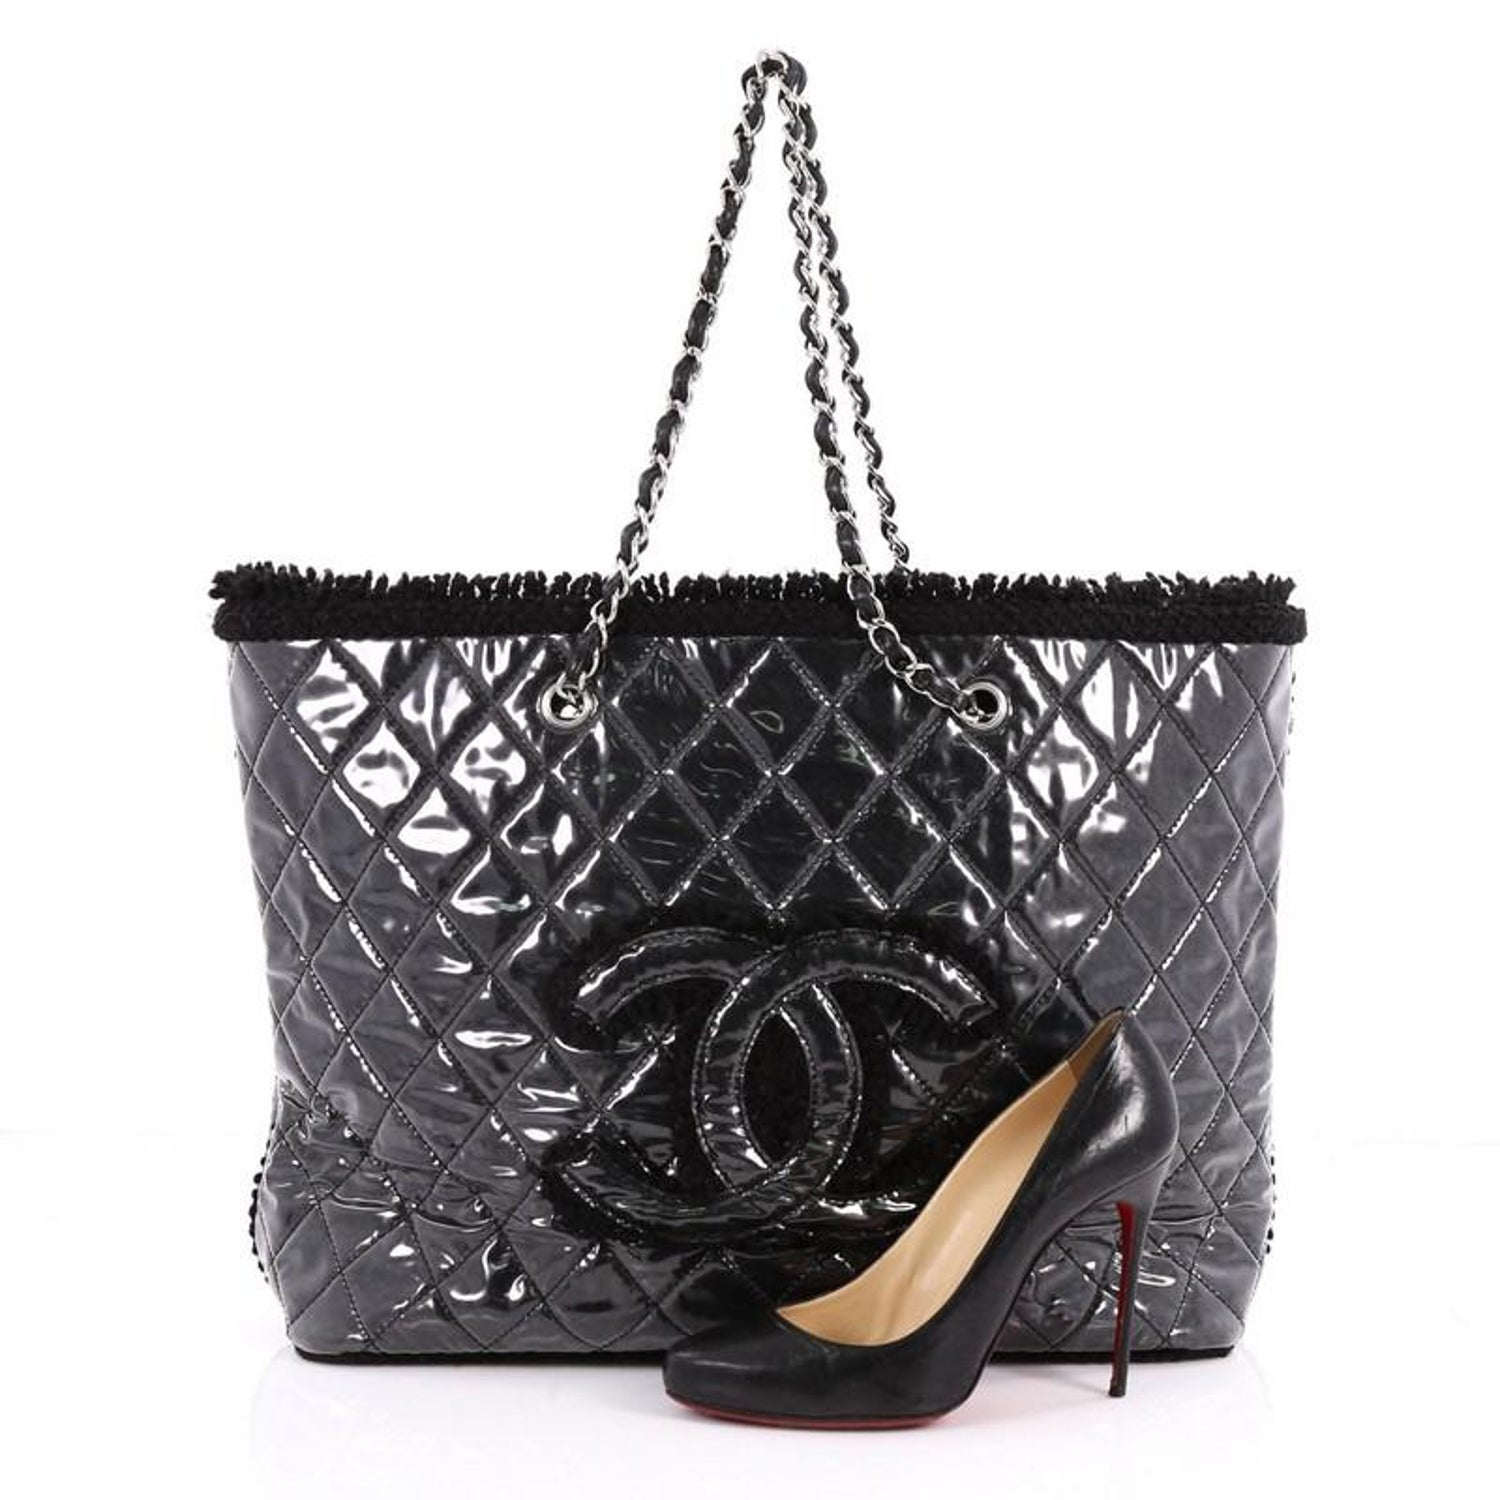 9400feb8d8b2 Chanel Funny Tweed Tote Quilted Vinyl Large at 1stdibs